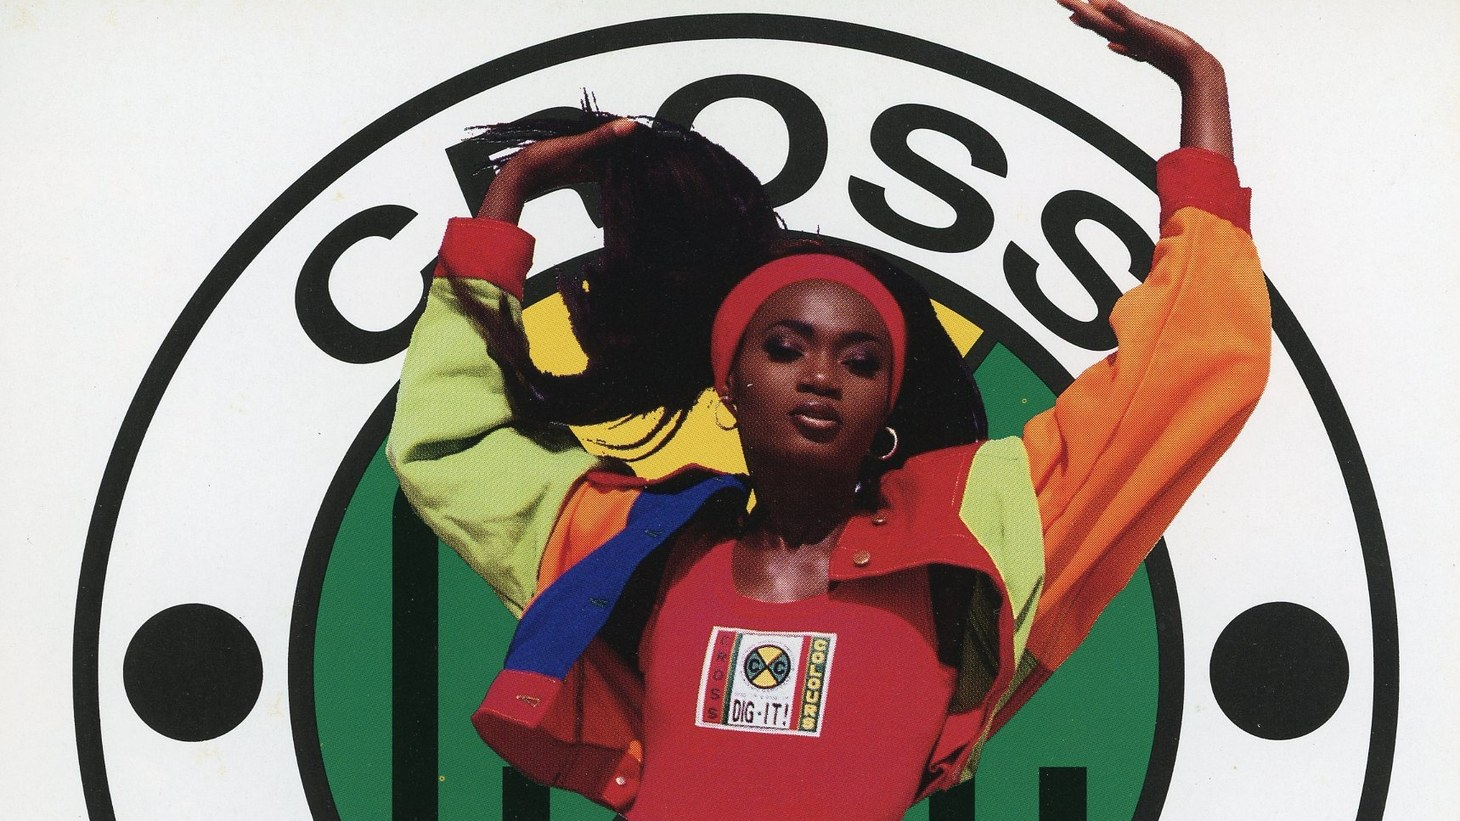 Cross Colours promotional featuring spokesmodel Sali, ca. 1992.